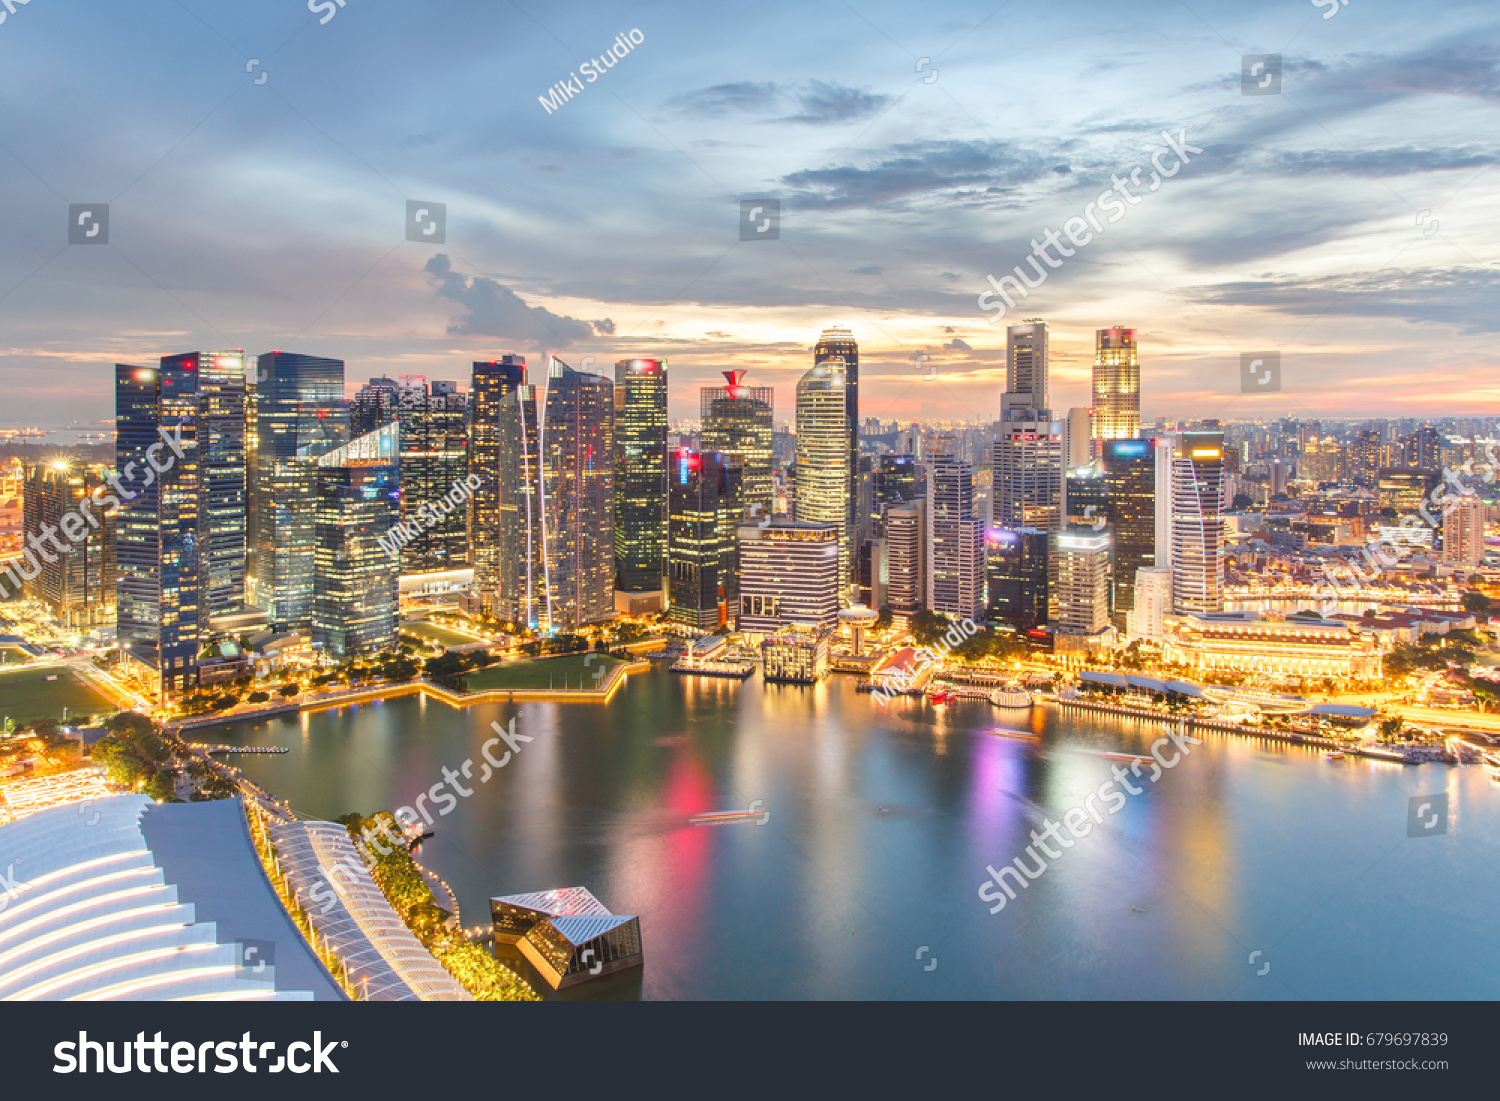 Colorful lights architecture business building and financial district in sunset time at Singapore City. #679697839